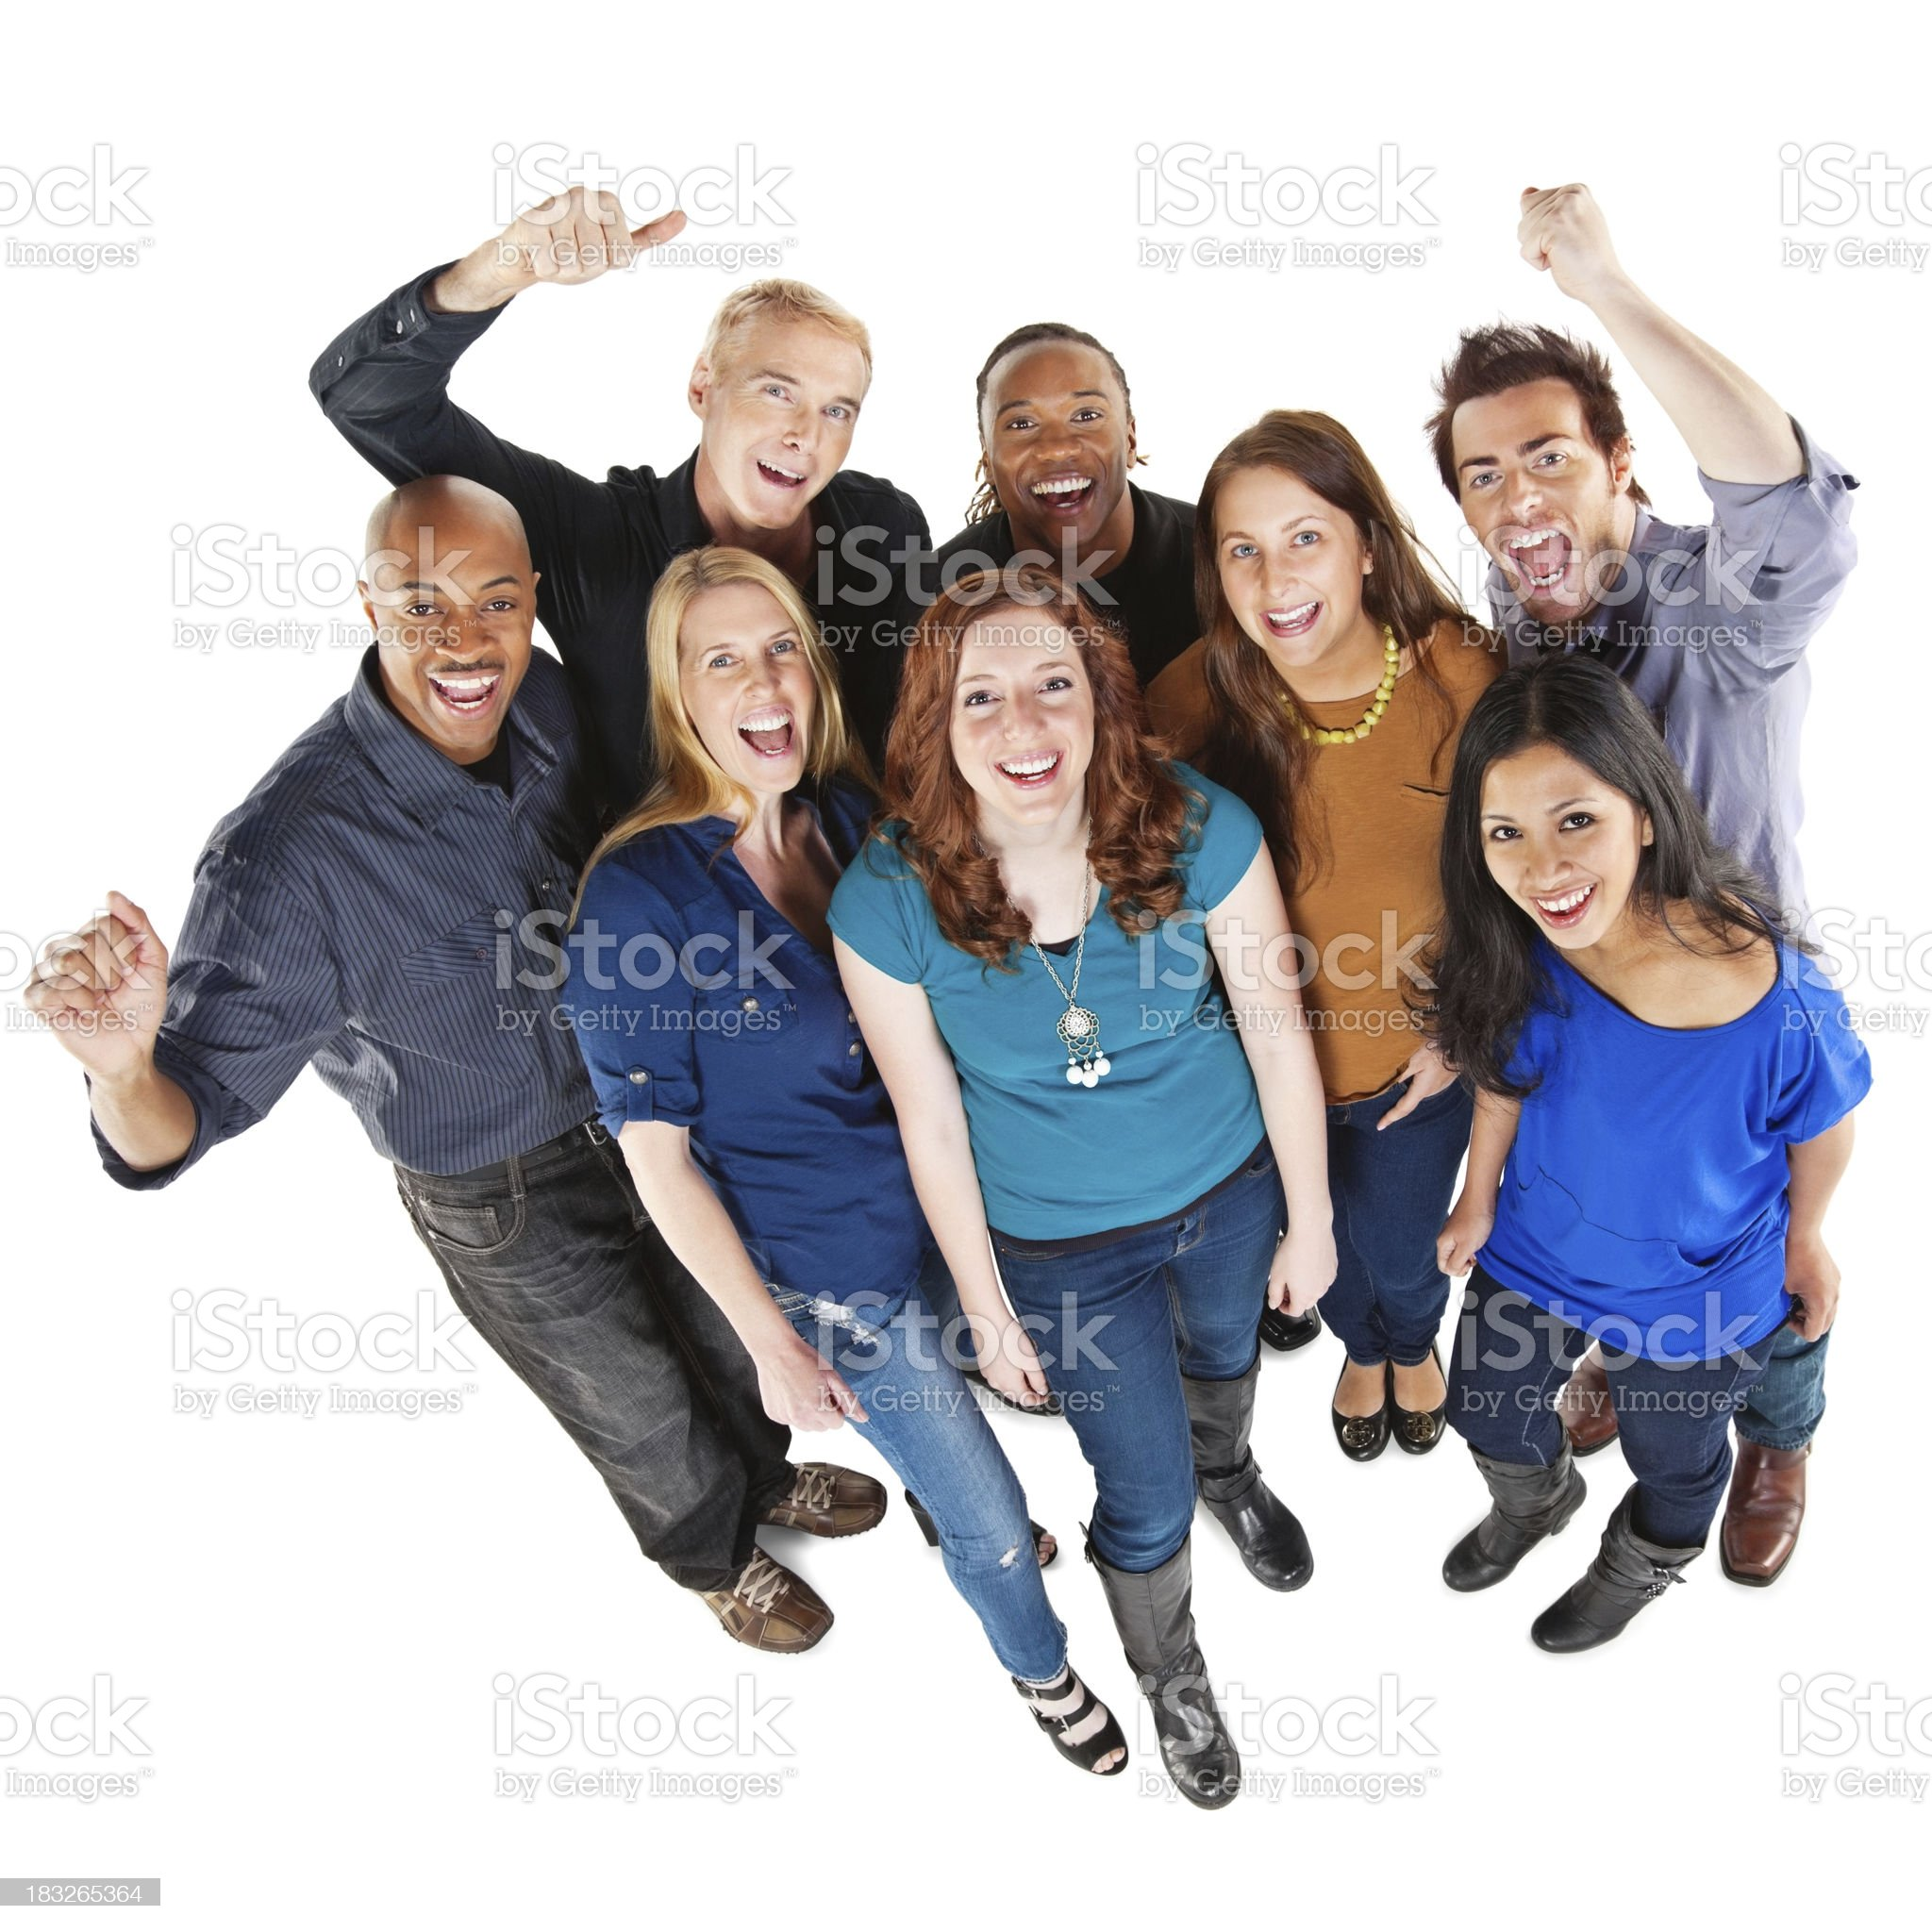 Excited Group of People Looking Up, Full Body royalty-free stock photo